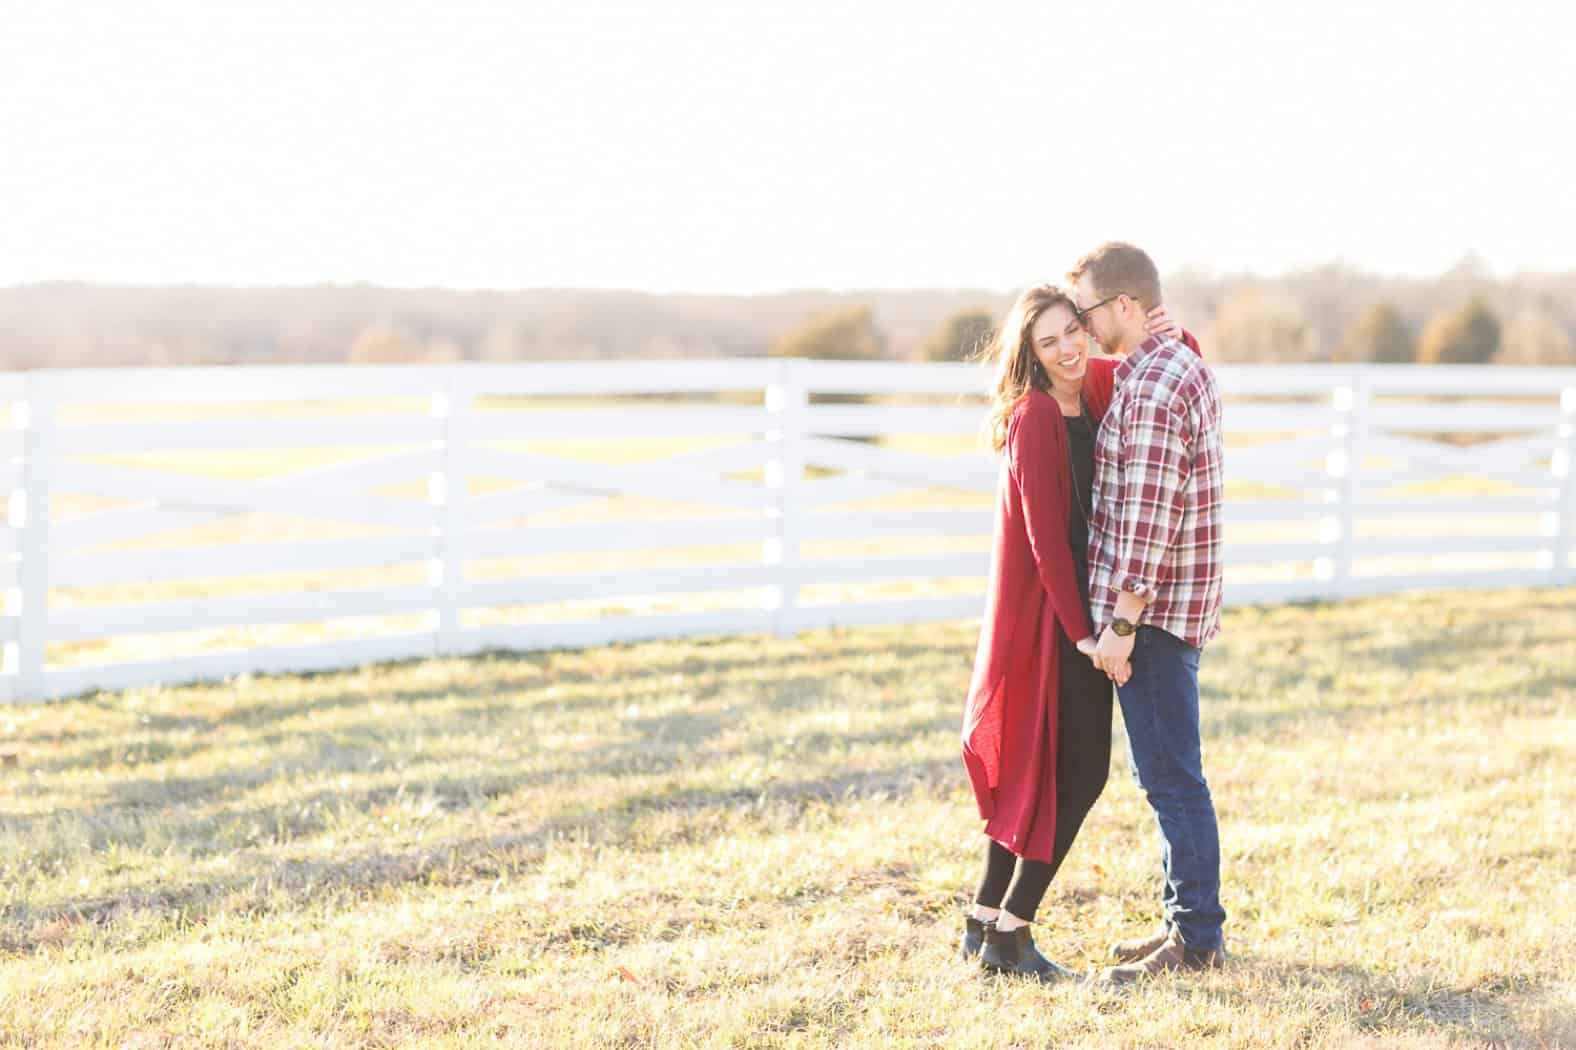 northfield estate cumberland virginia engagement wedding photos